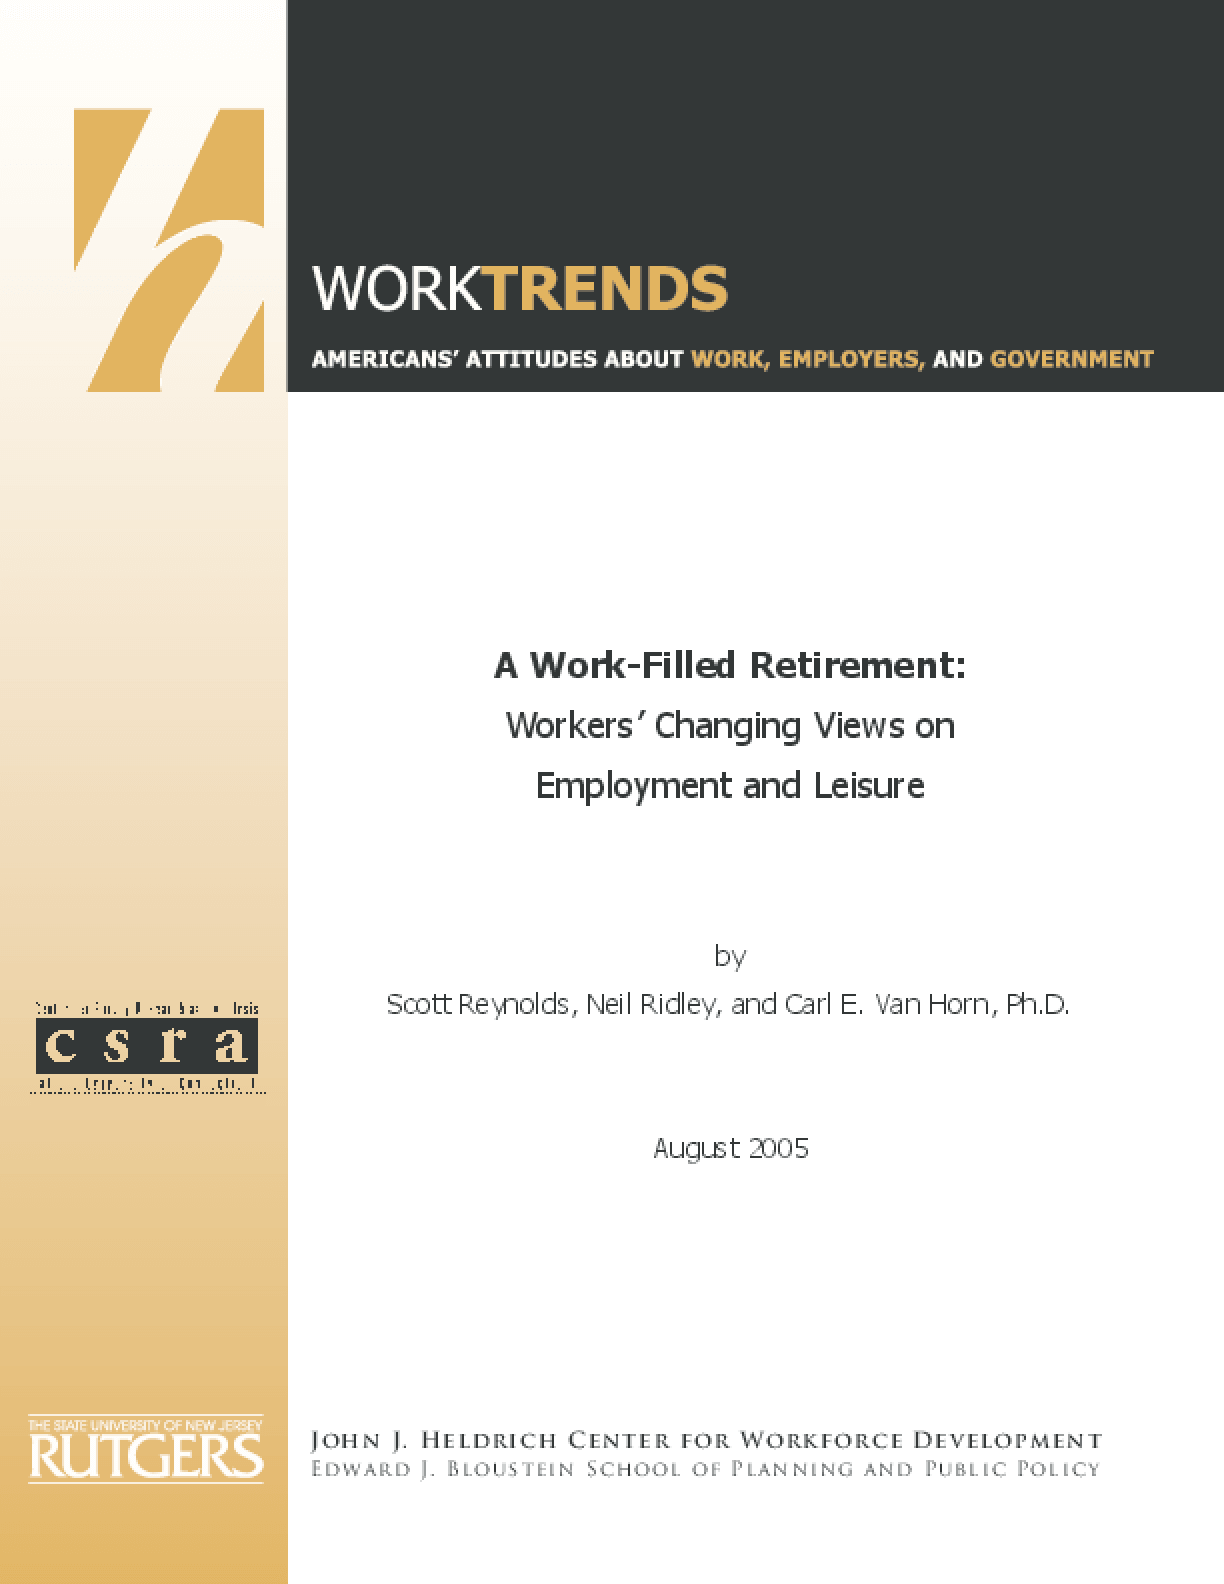 A Work-Filled Retirement: Workers' Changing Views on Employment and Leisure-Full Report